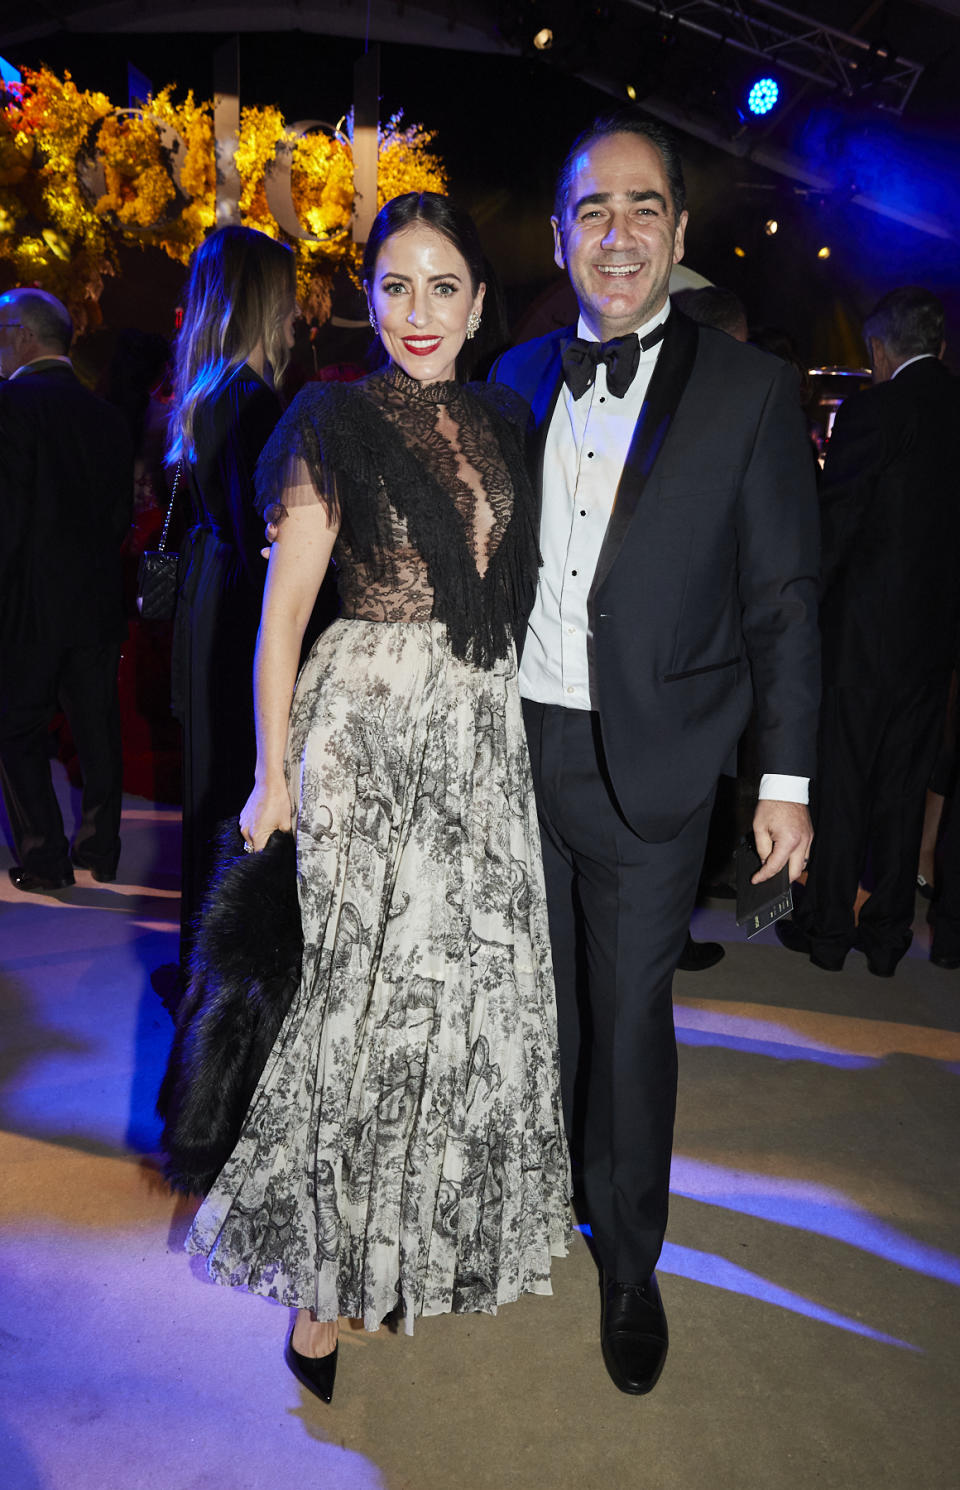 Michael 'Wippa' Wipfli and wife Lisa Wipfli attend Gold Dinner 2021 on June 10, 2021 in Sydney, Australia. Photo: Getty Images.